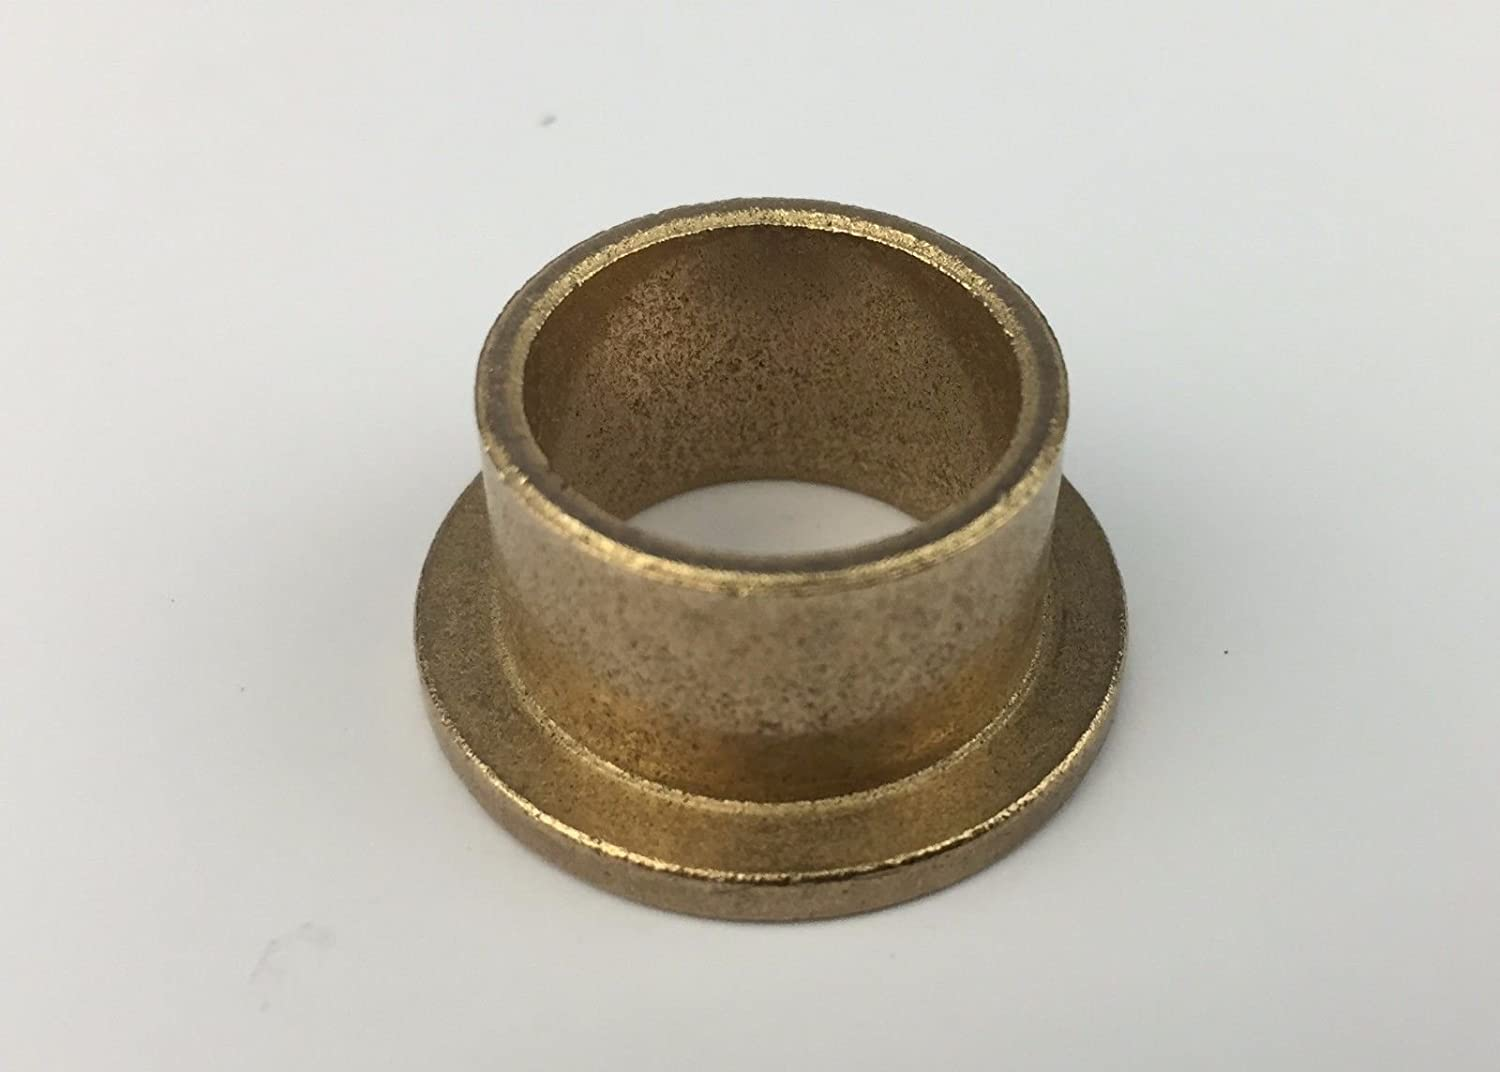 NEW Bronze Bushing, Middleby Marshall 22034-0003, Commercial Pizza Oven Conveyor